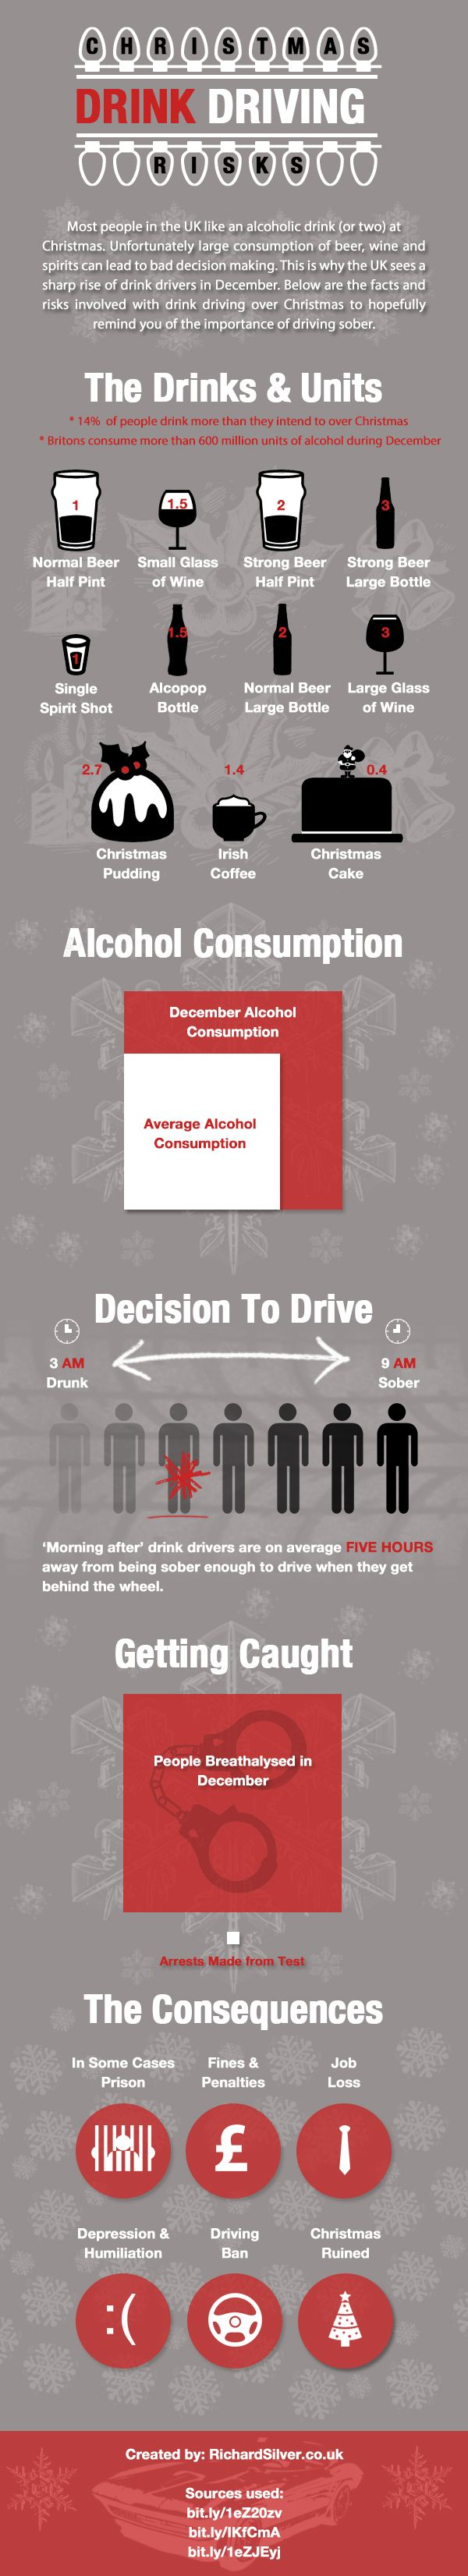 best facts and stats get it all here images infographic christmas drink driving risks anything motor